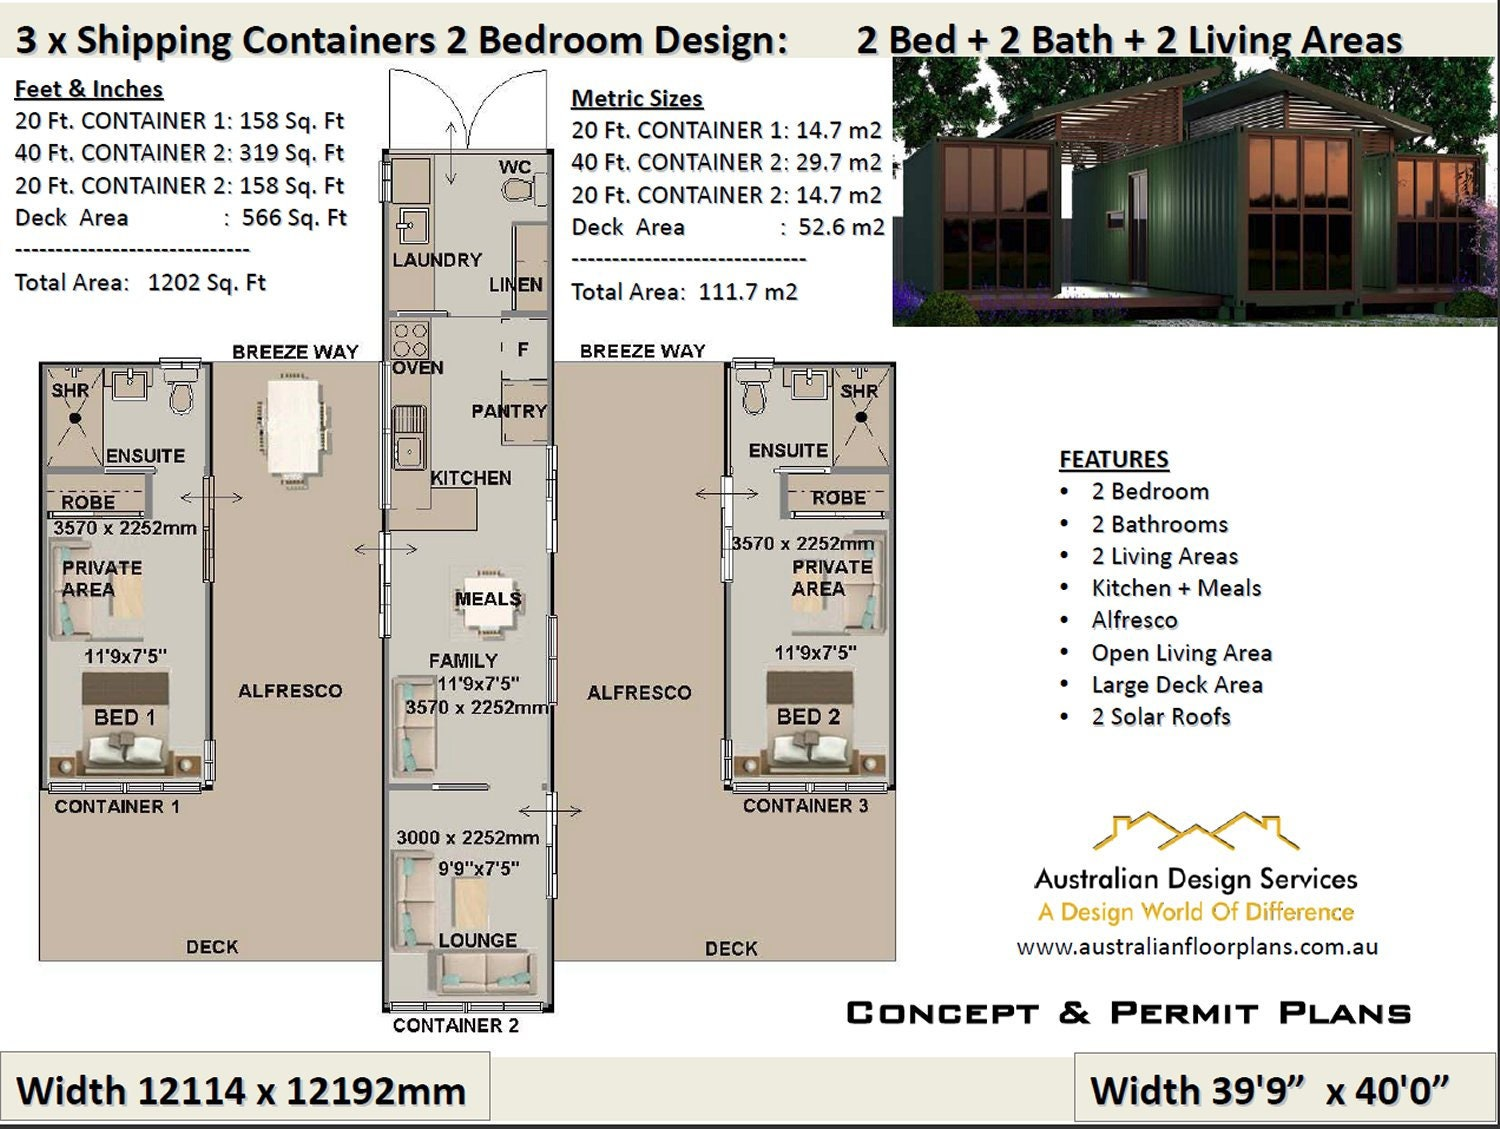 Pleasing 2 Bedroom Shipping Container House Plans 2 Bed Container Homes Plans House Plans Container Home Usa Feet Inches Australian Metric Complete Home Design Collection Papxelindsey Bellcom